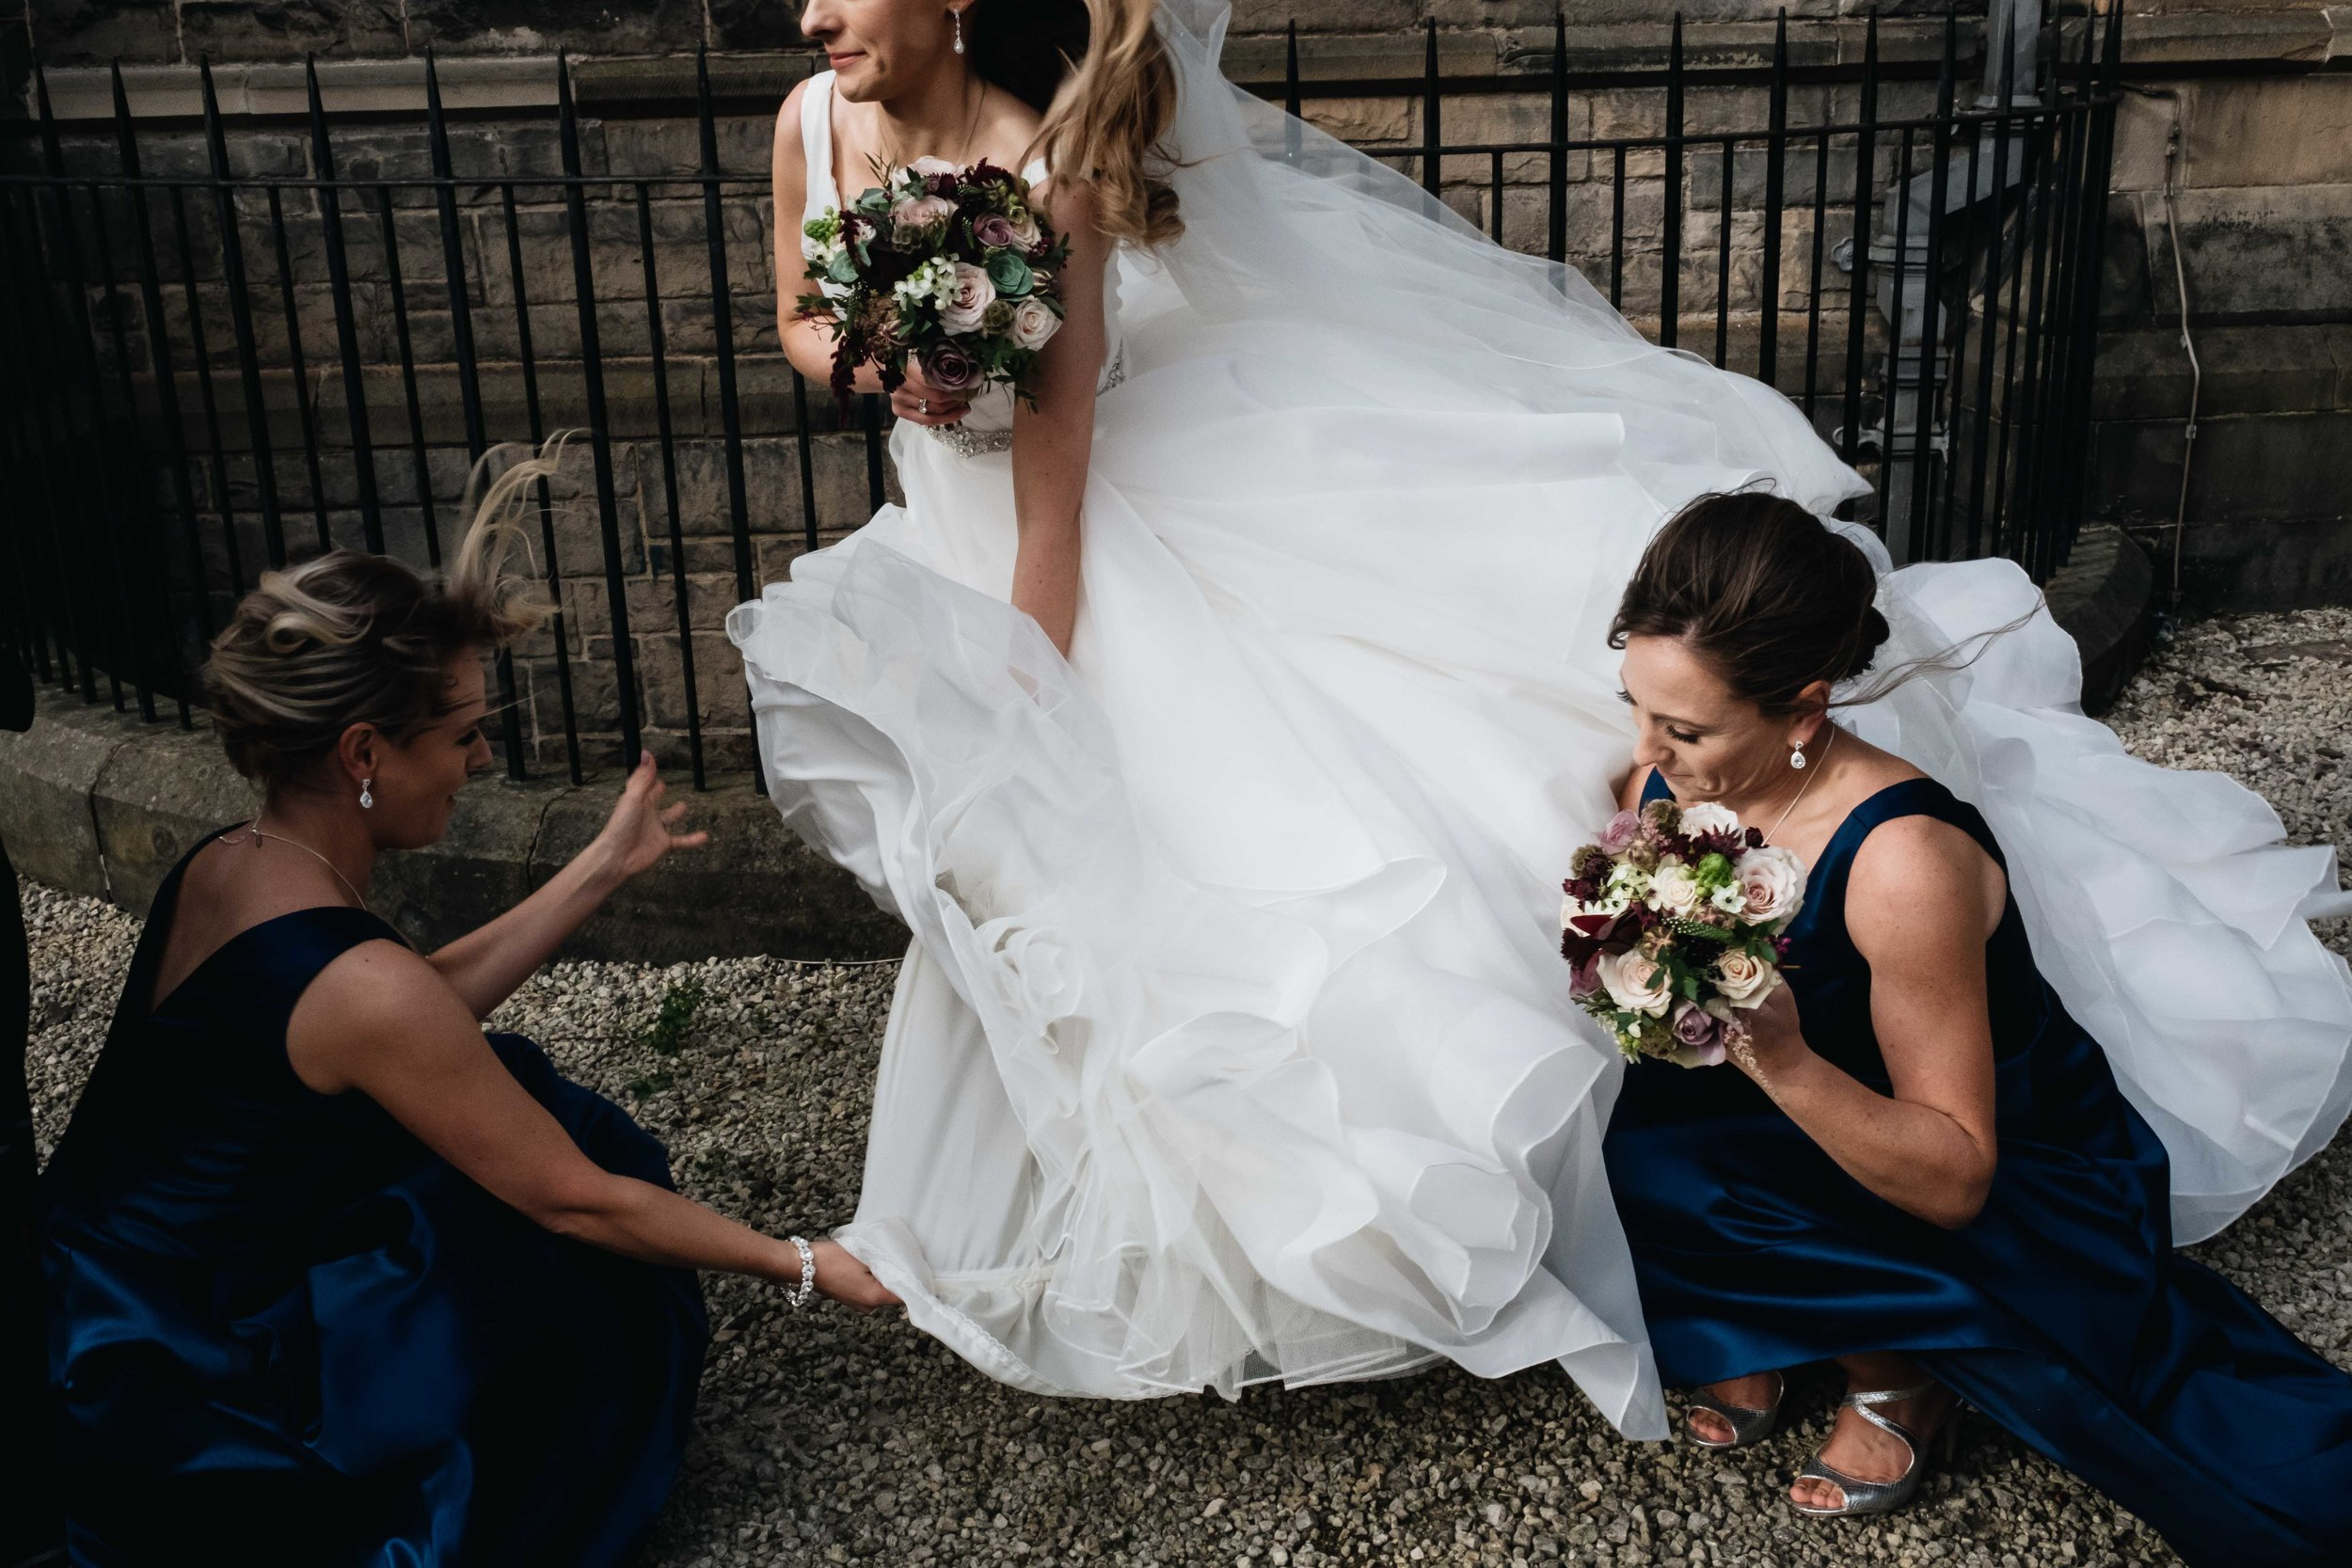 bridesmaids hold bride's wedding dress down as it blows in the strong wind